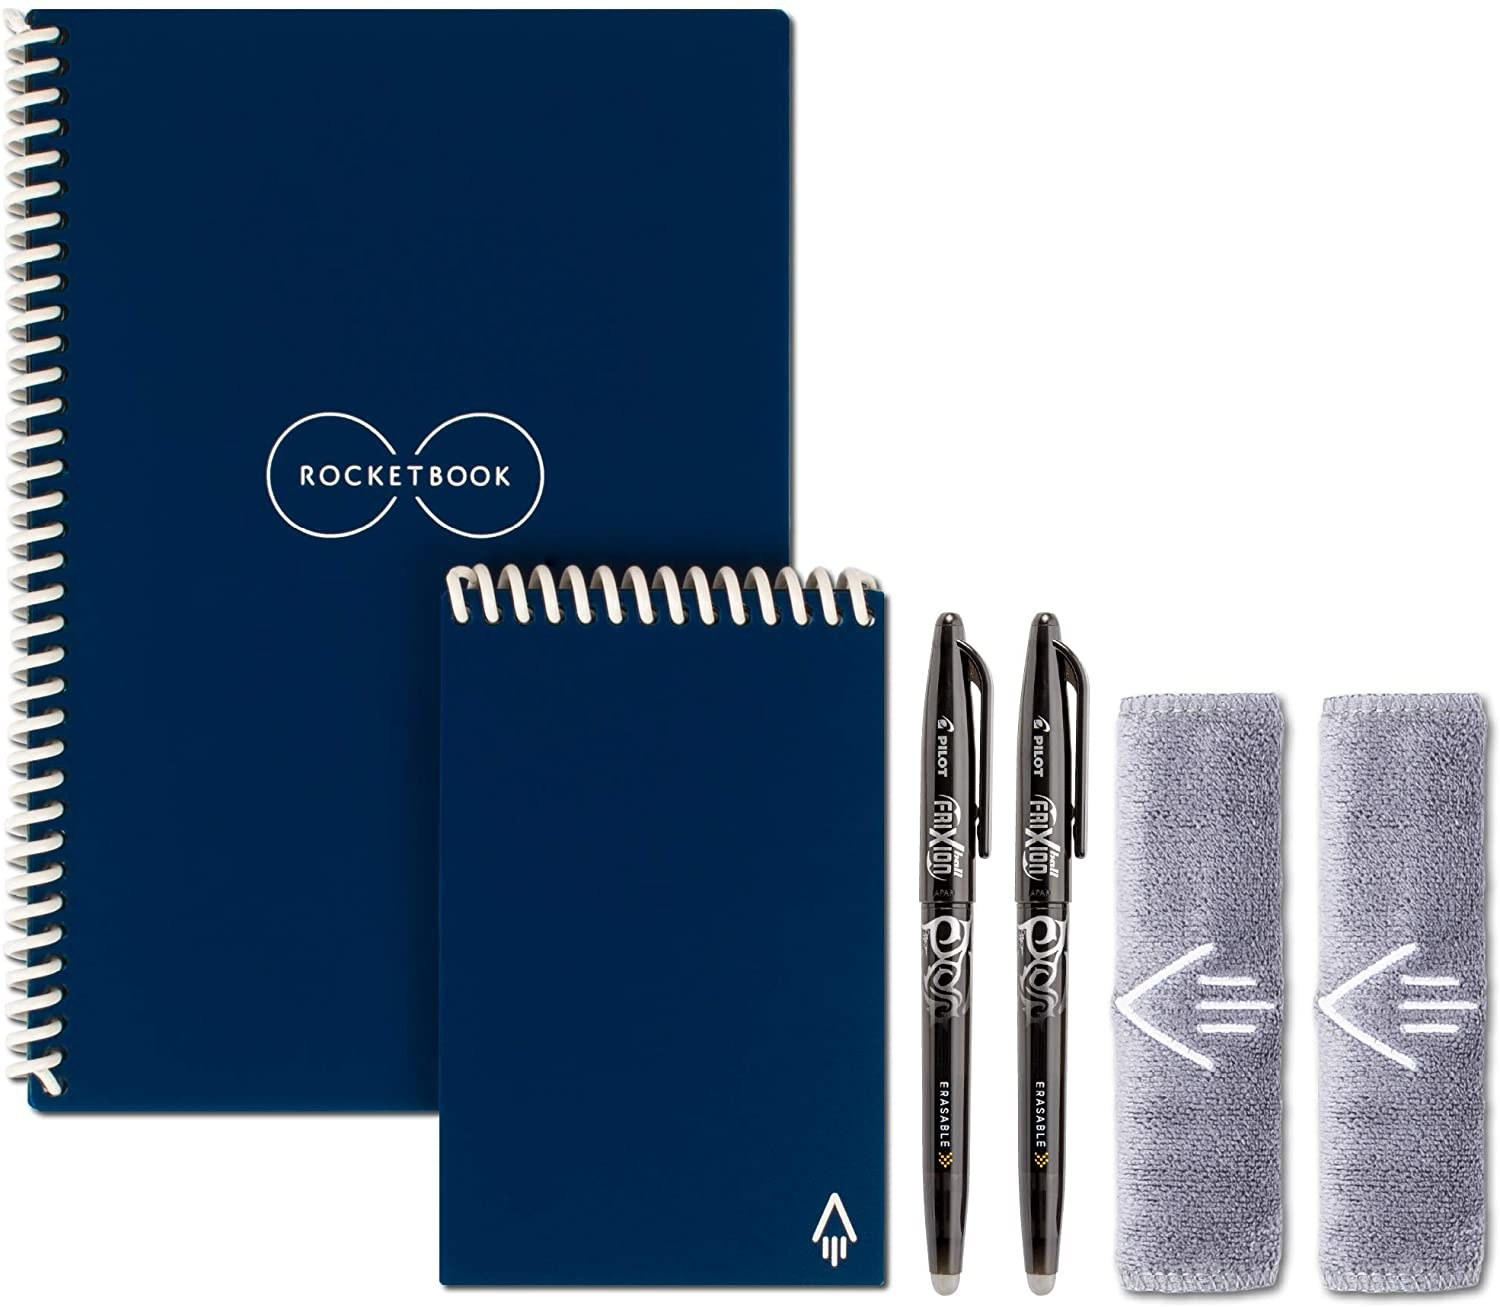 The notebooks in navy